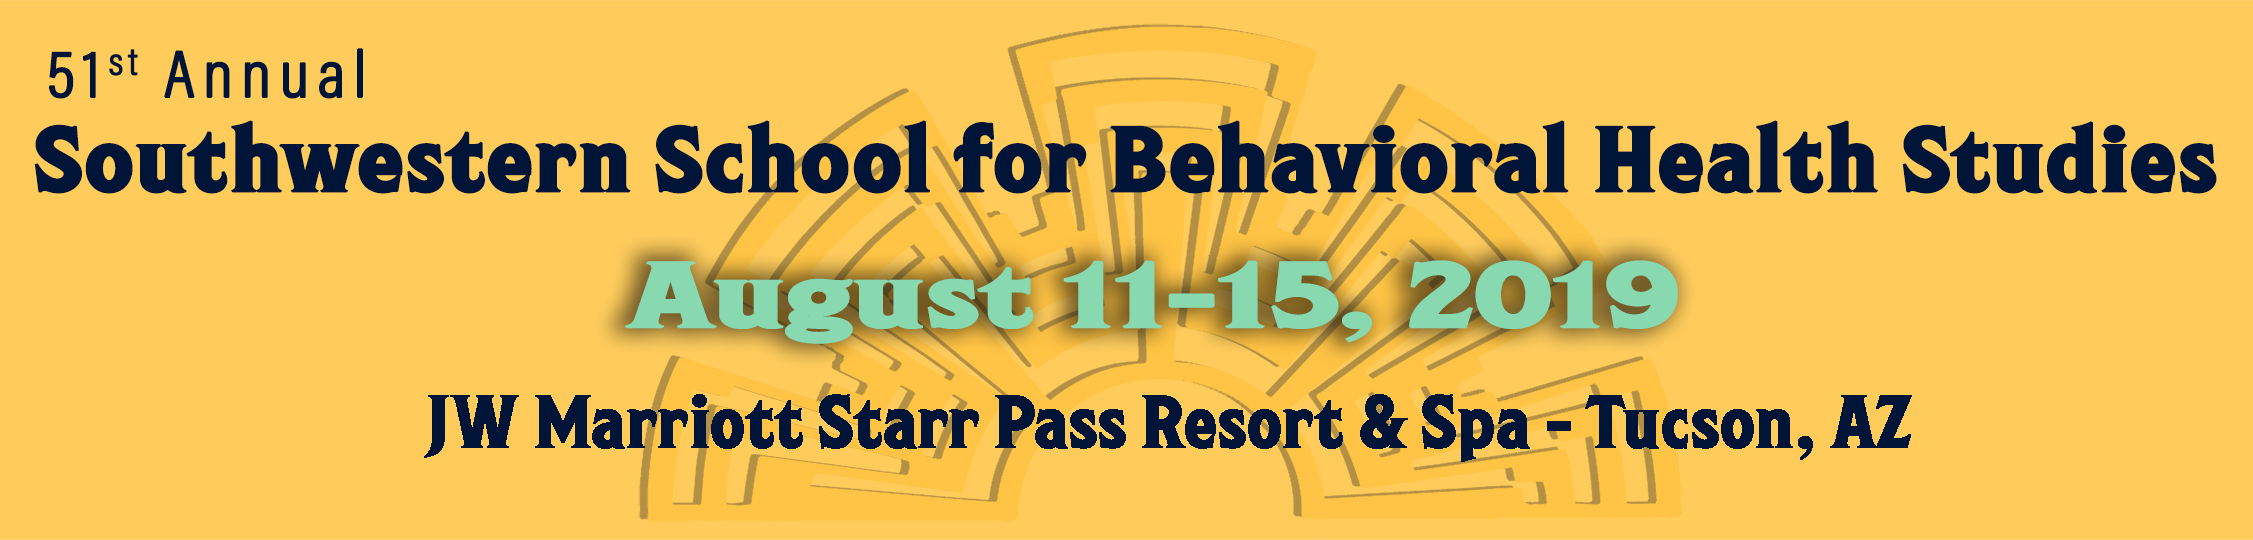 2019 Southwestern School for Behavioral Health Studies